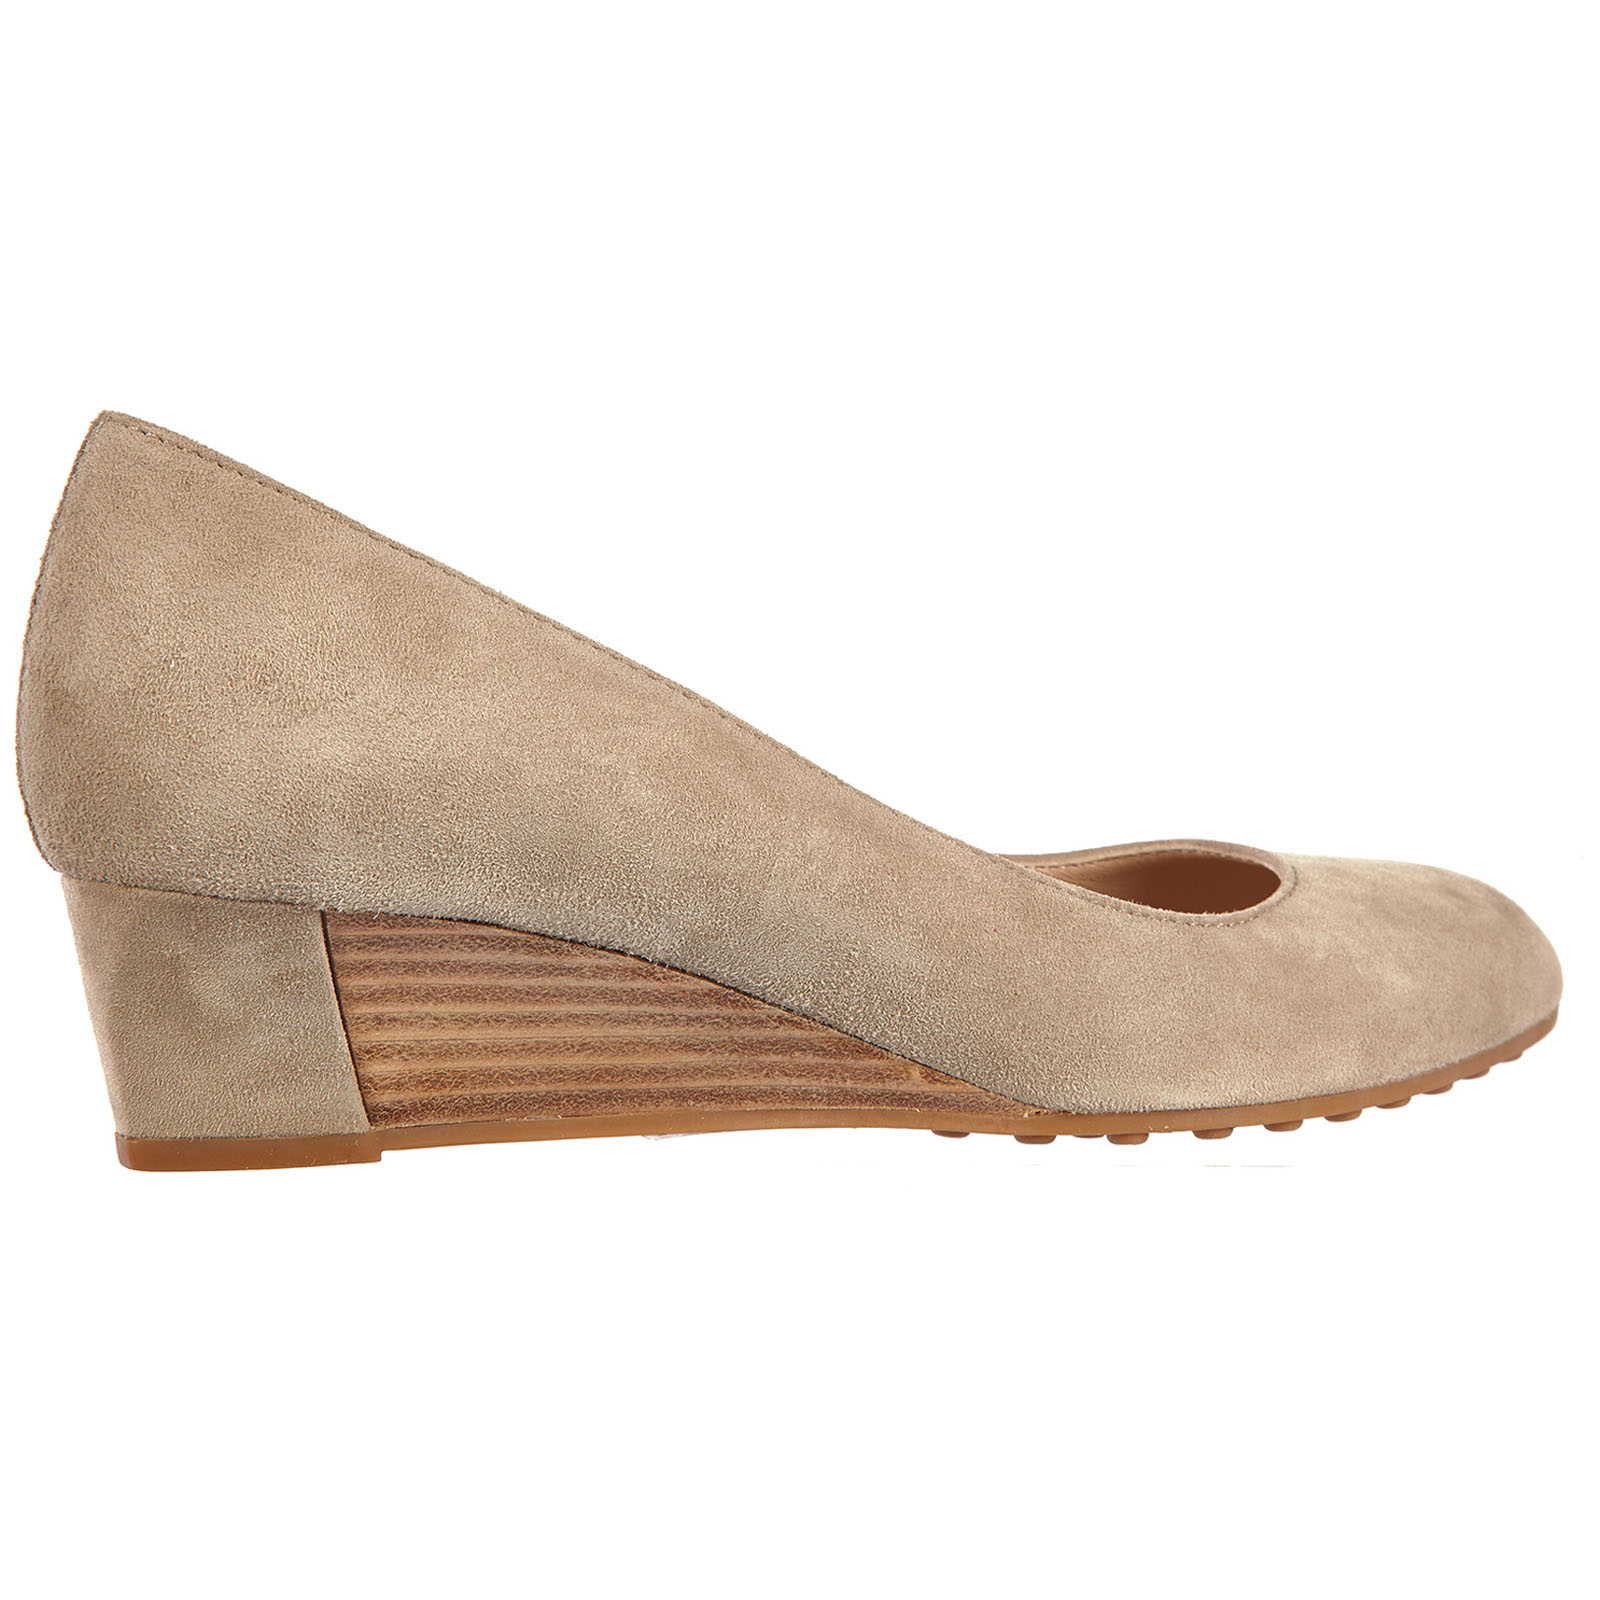 Women's suede shoes wedges sandals corda